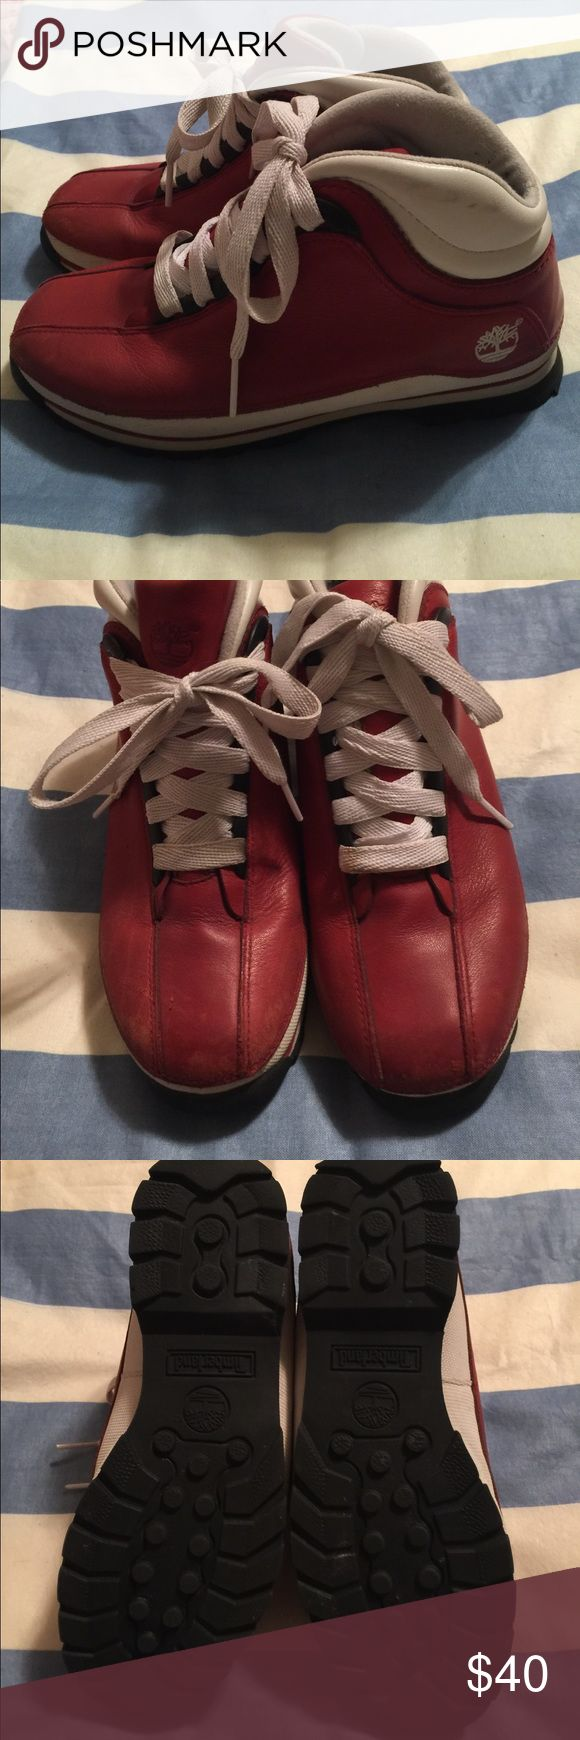 Timberland Hiking Boots Red Timberland Hiking Boots. Size 9 in women's. Has some wear from use but still in great condition. What wear they have is shown in pictures. Timberland Shoes Ankle Boots & Booties